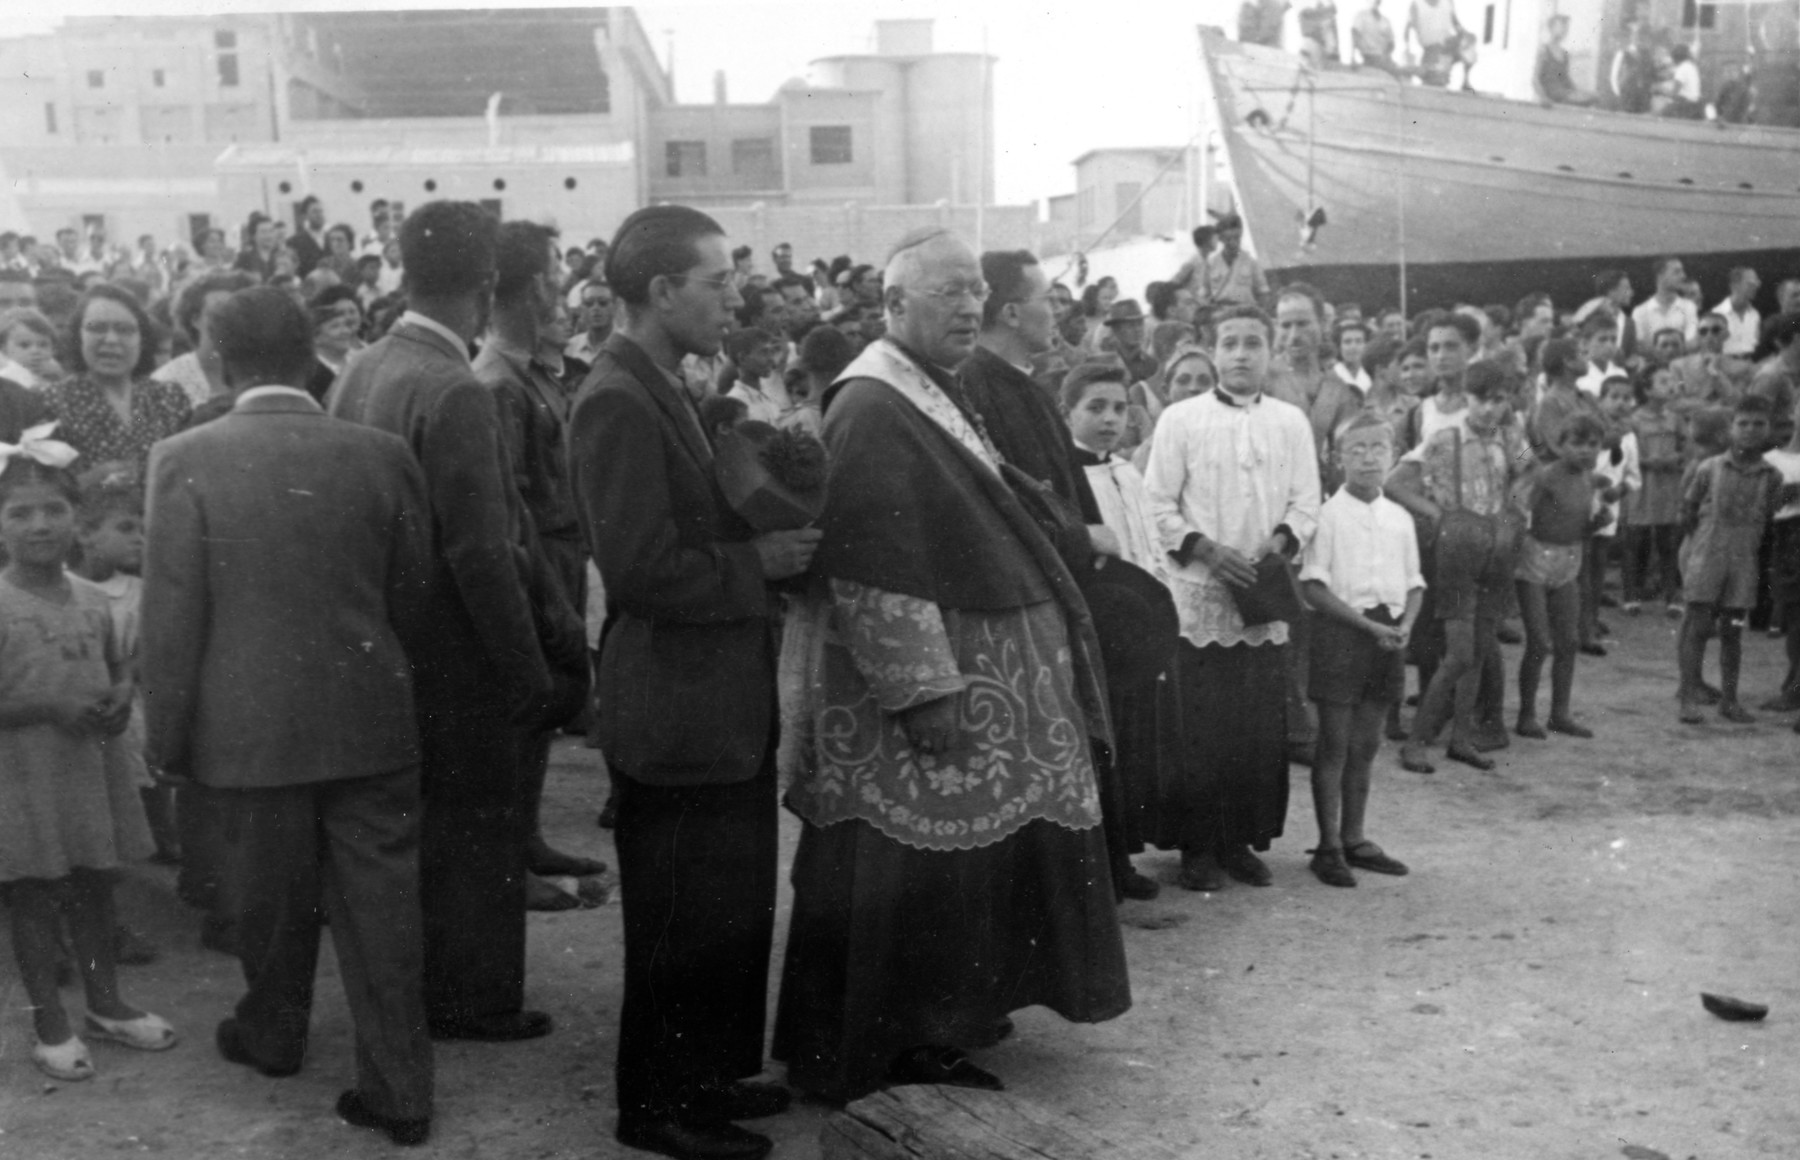 Italian priests bless the Dalin prior to its sailing from Monopoli to Palestine with 37 immigrants on board.